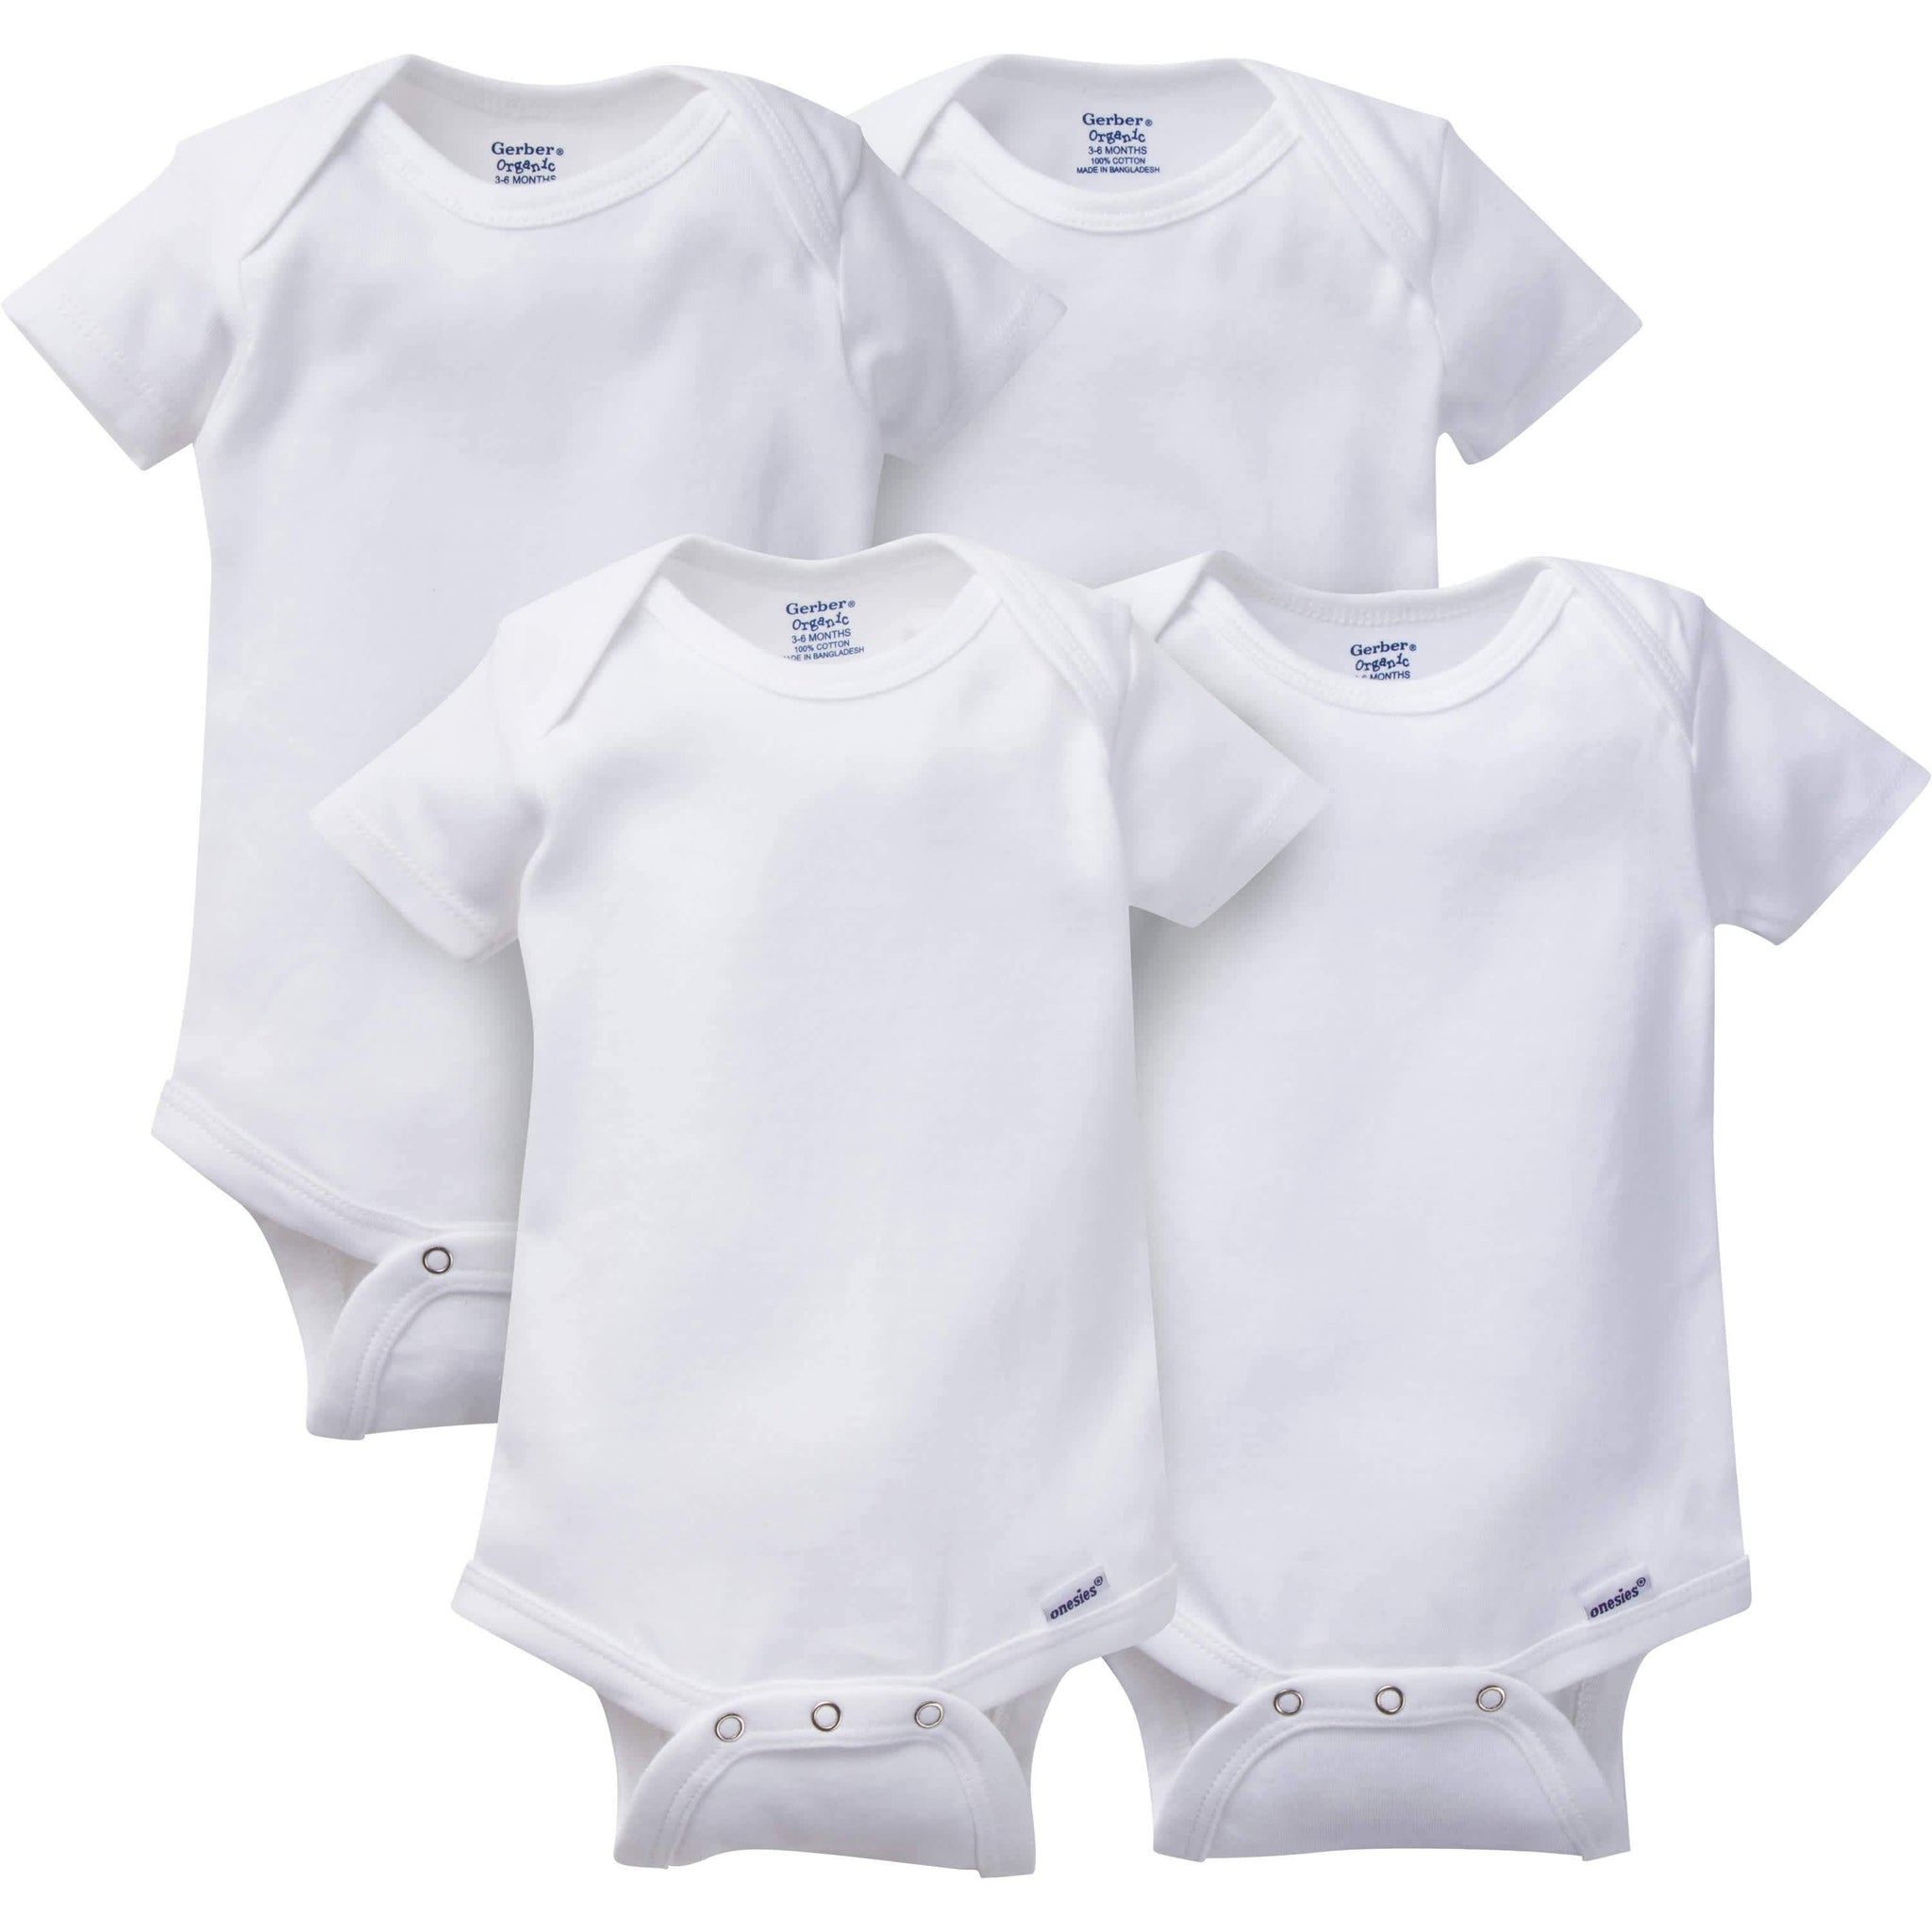 4-Pack Neutral Organic White Onesies Brand Short Sleeve Bodysuits